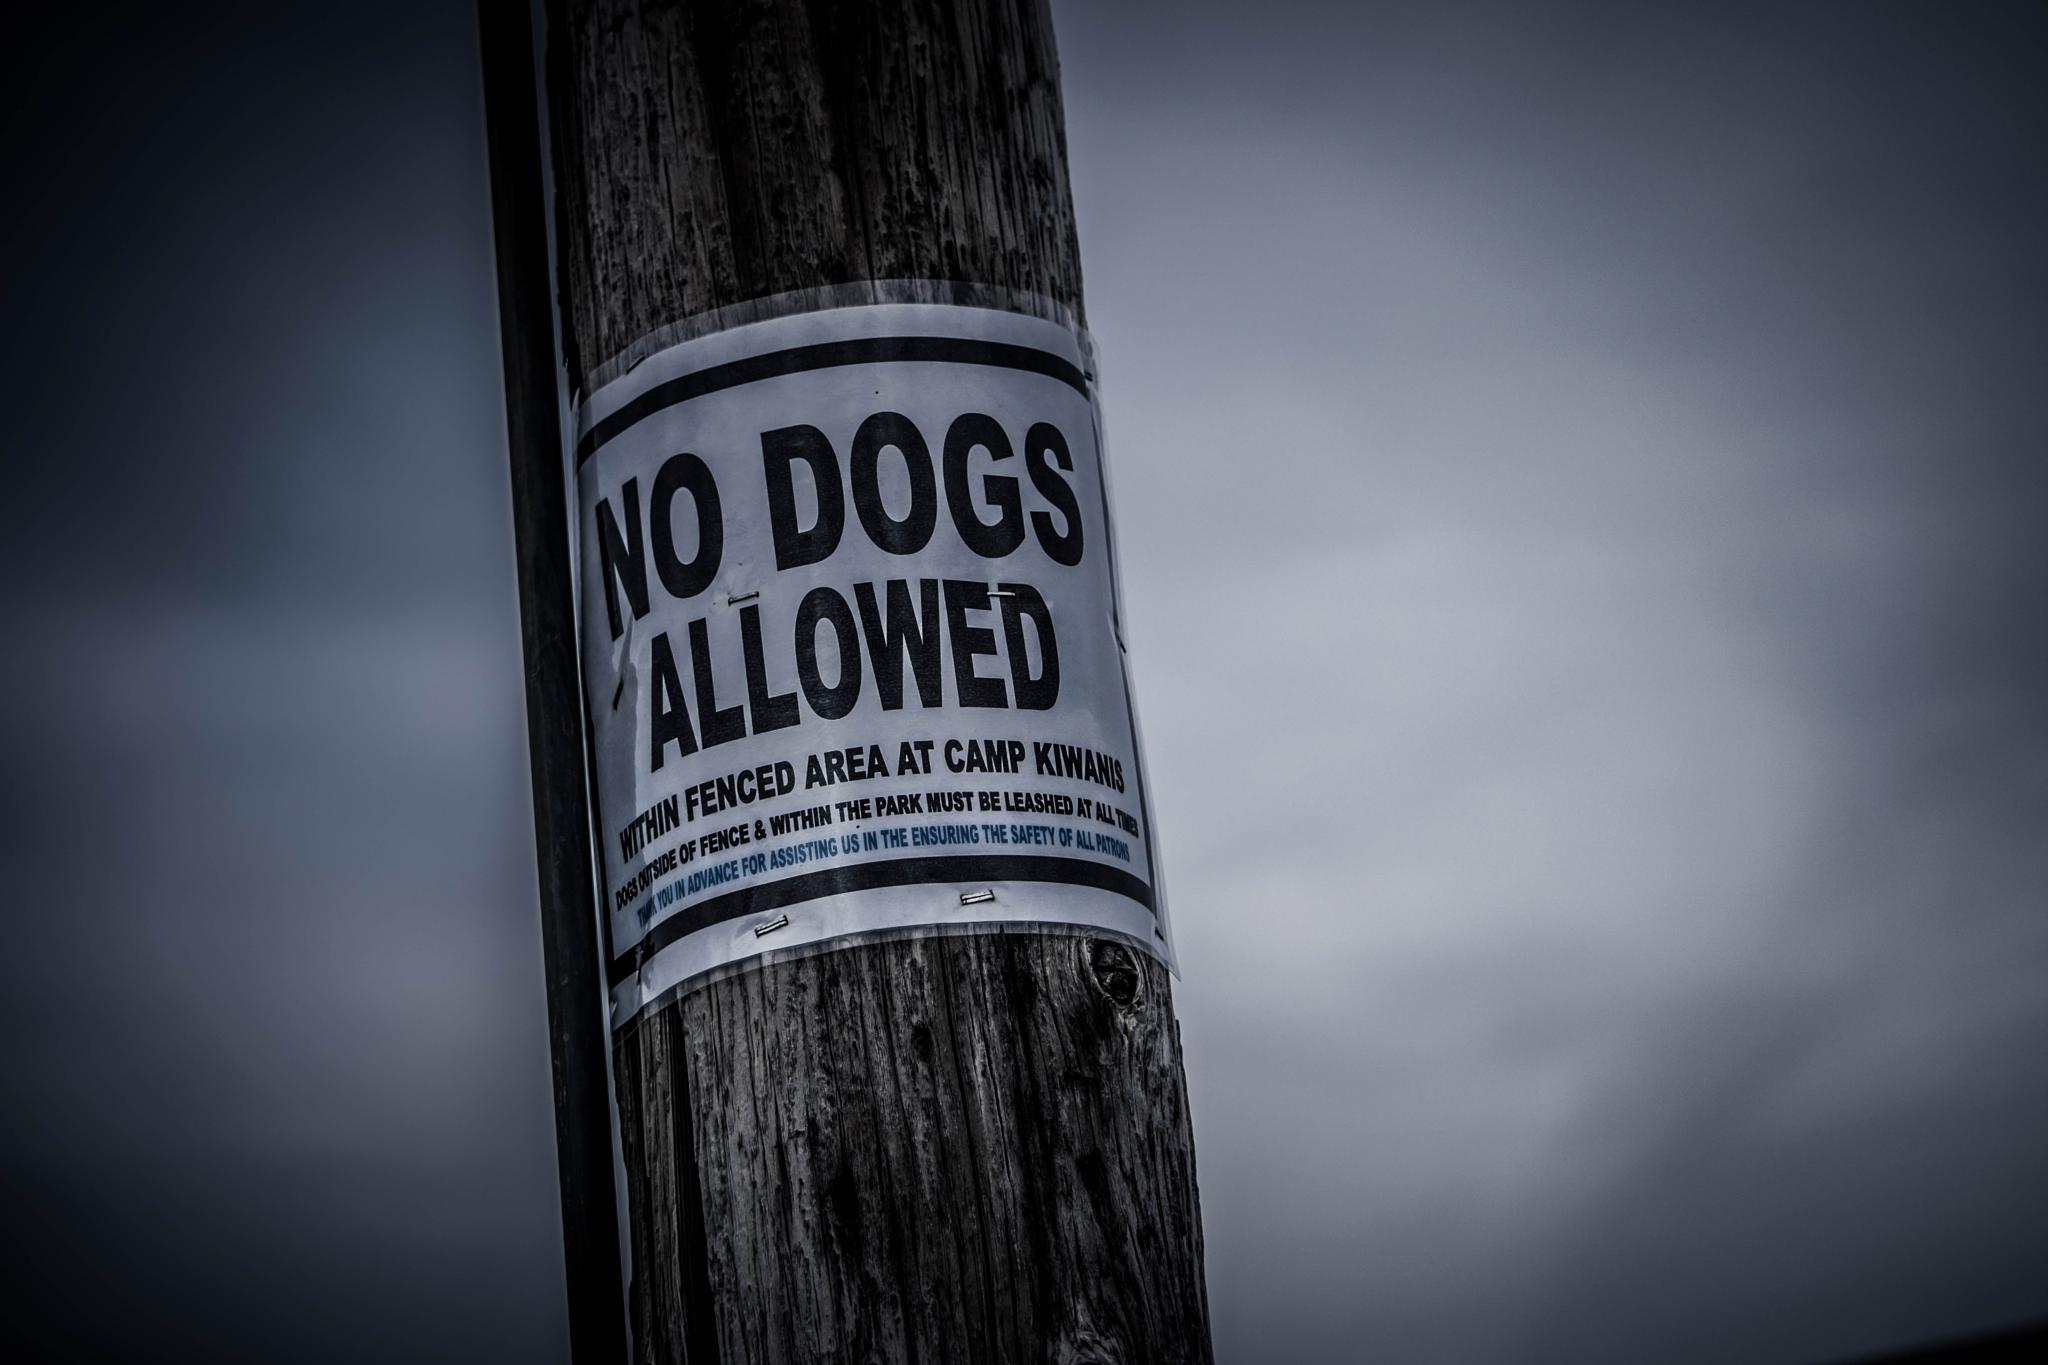 No Dogs Allowed by Pam Stewart